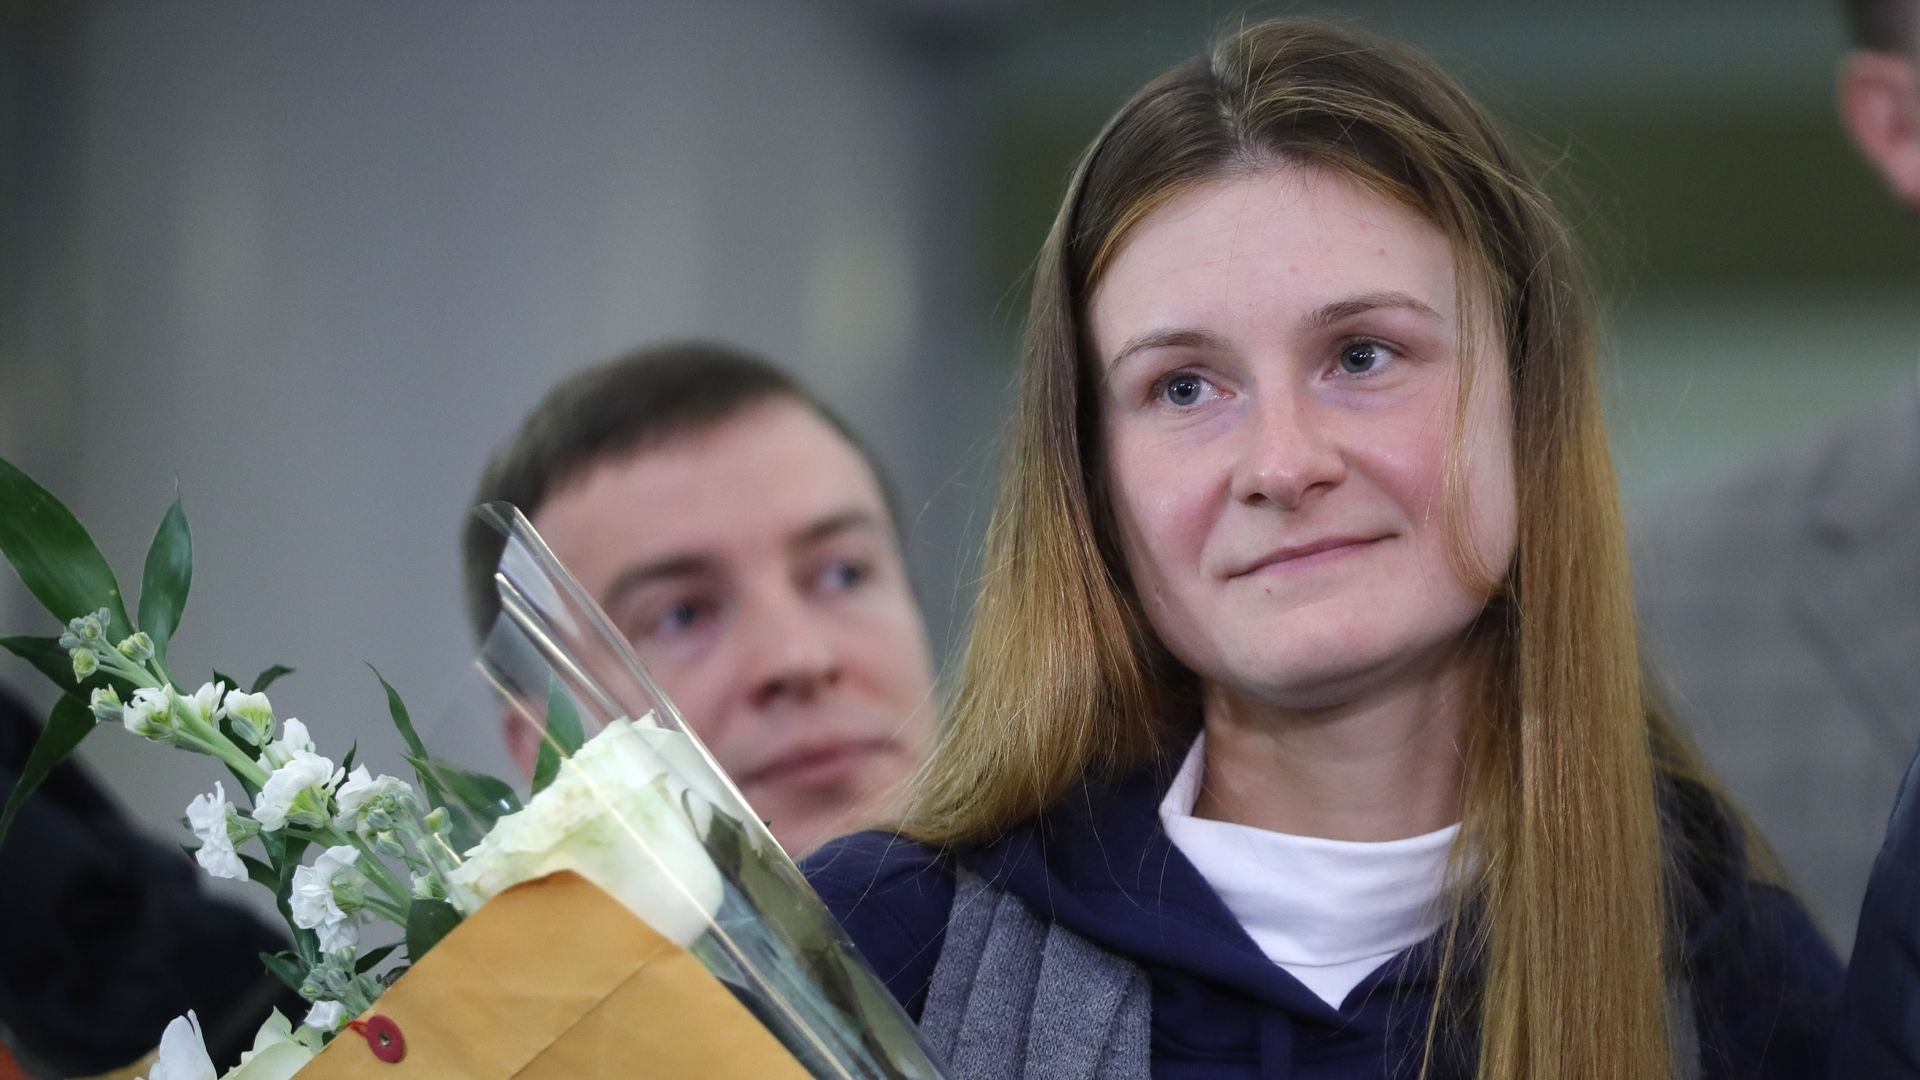 Russian citizen Maria Butina (R) is pictured at the Sheremetyevo International Airport upon arrival from the United States; Russian citizen Butina was arrested by the FBI in July 2018 in Washington DC